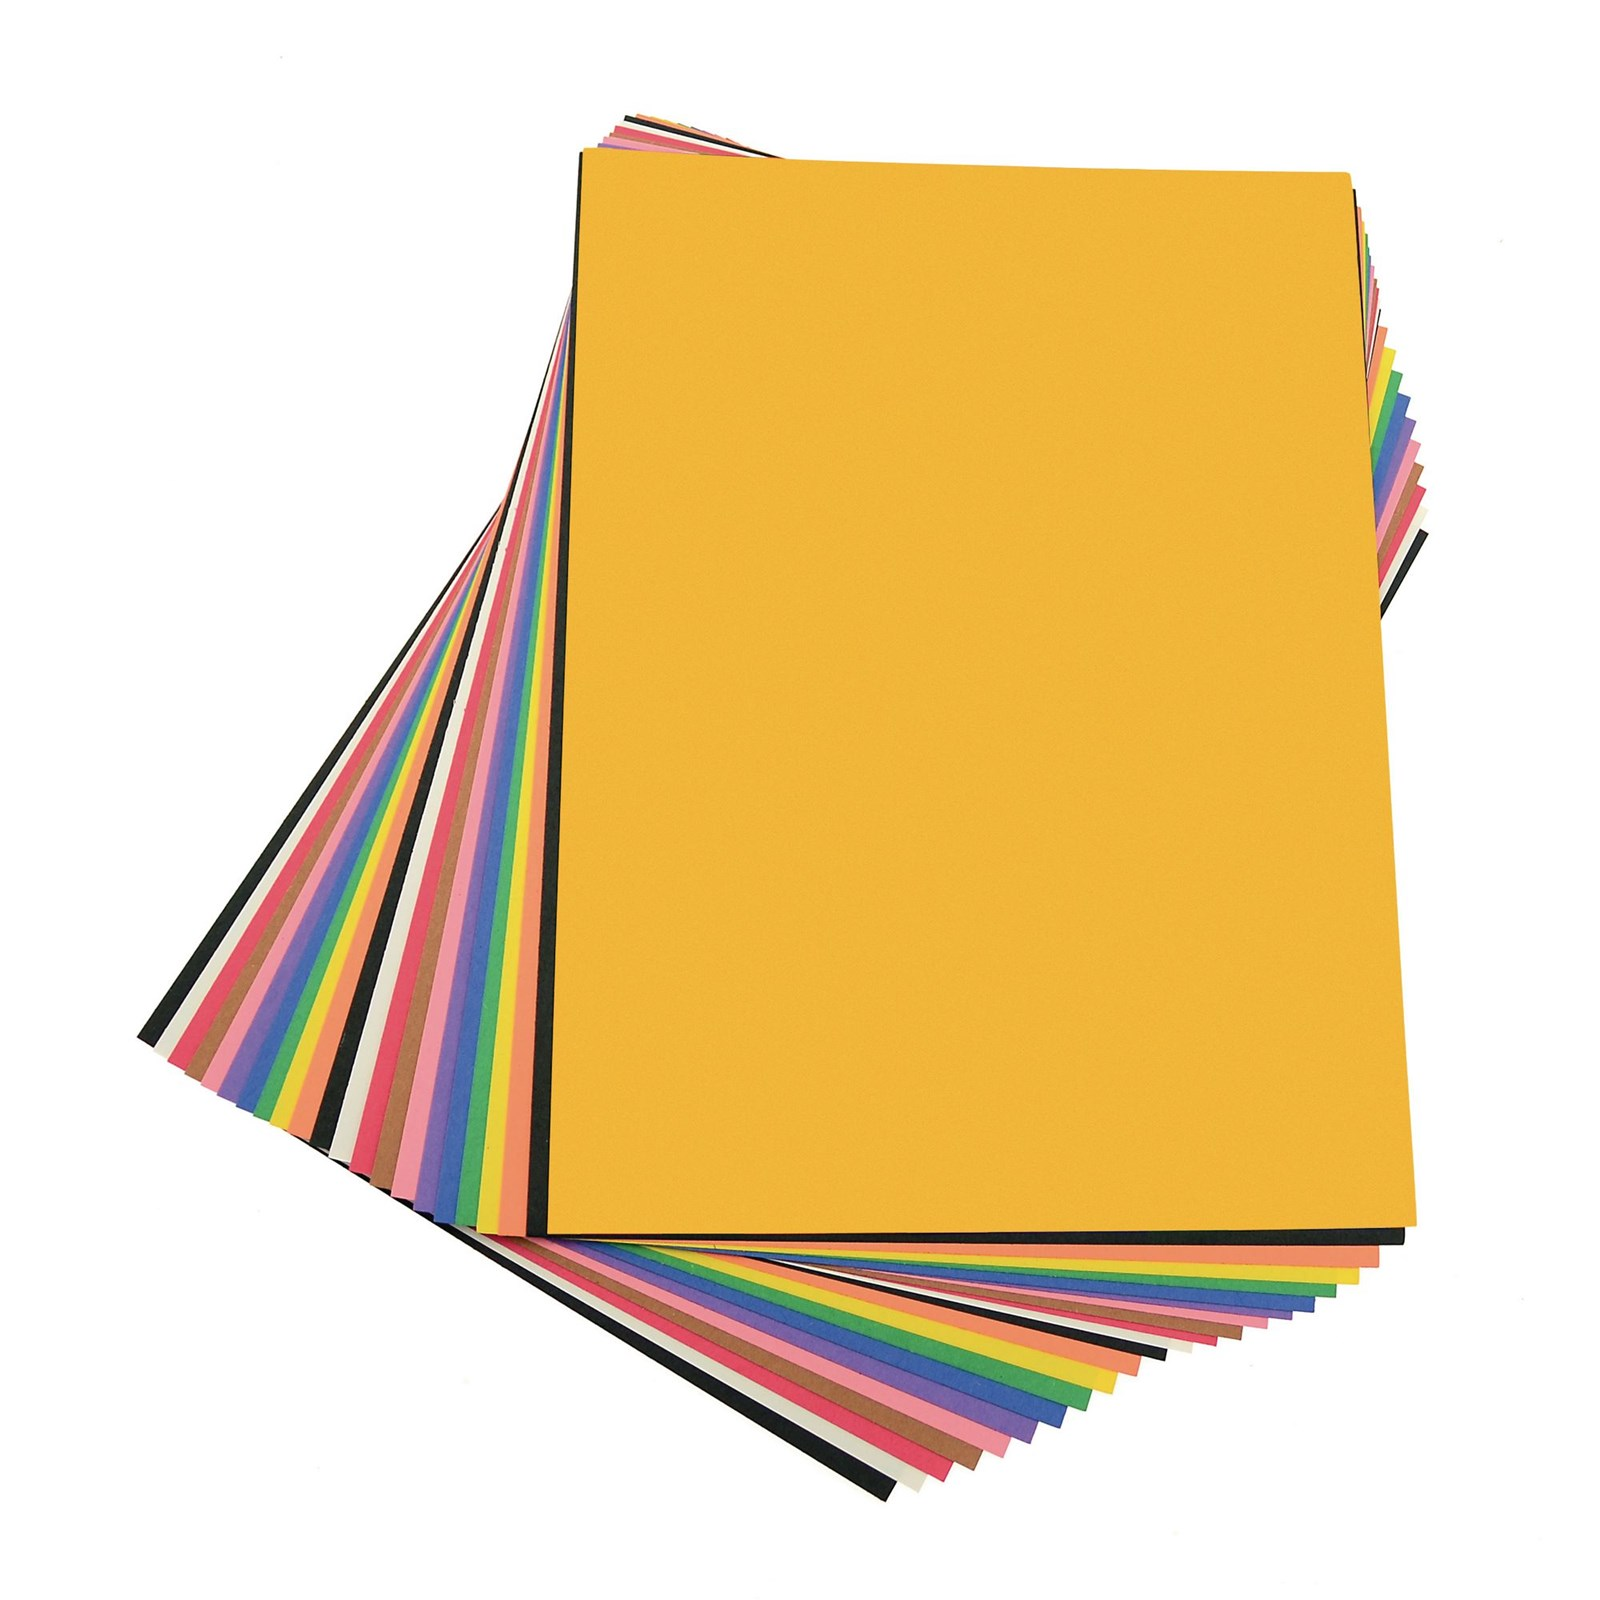 Spectra Construction A4+ Paper Assortment - Pack of 50